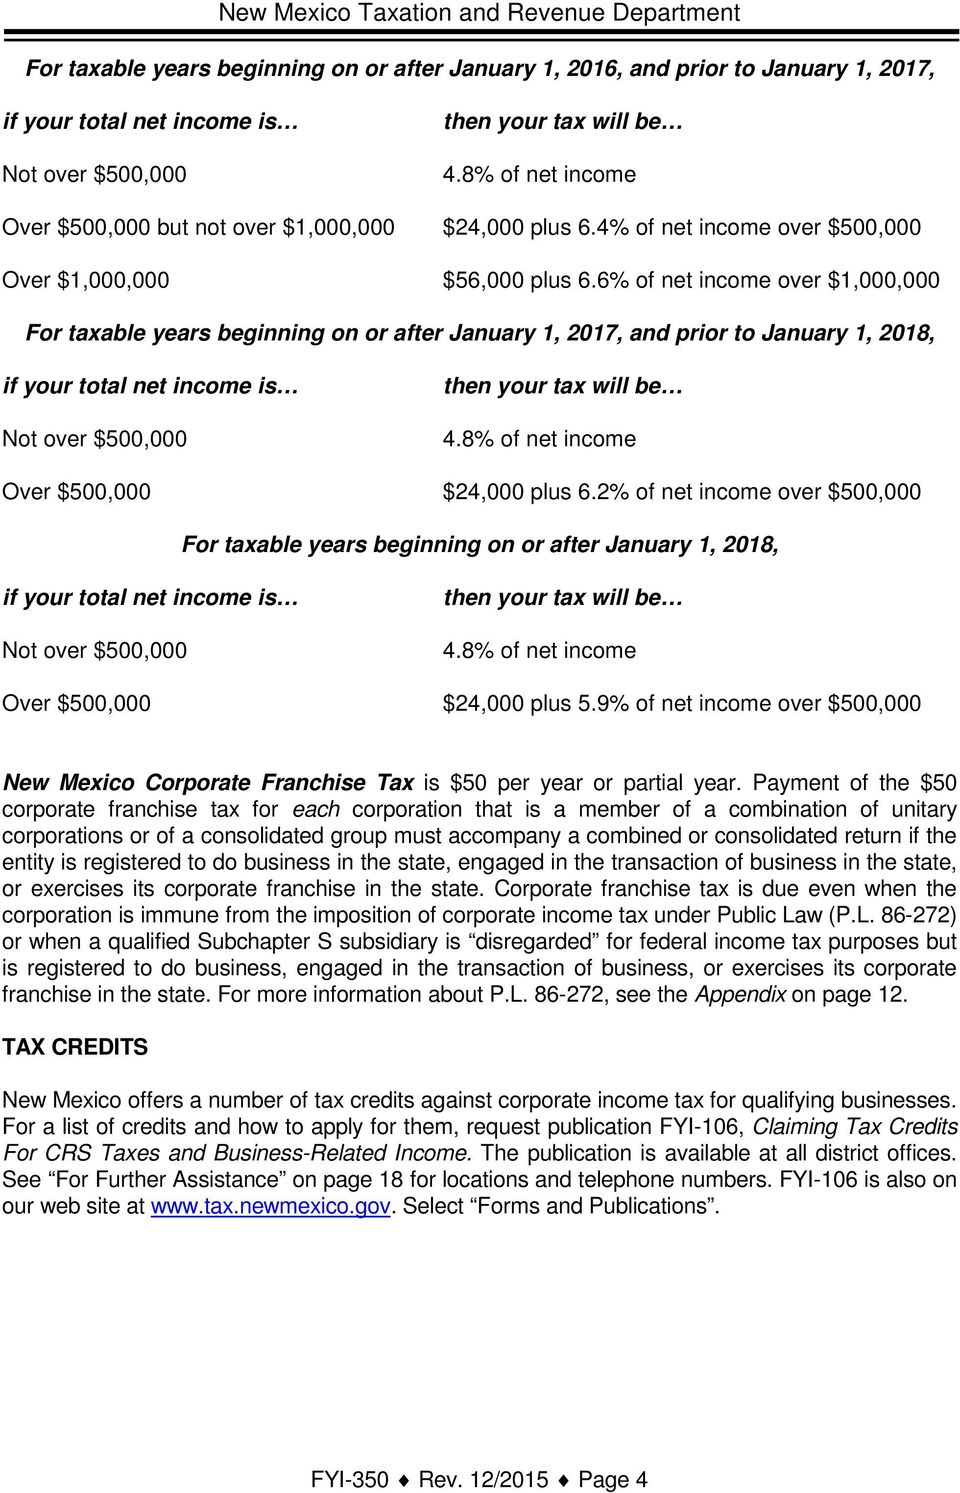 6% of net income over $1,000,000 For taxable years beginning on or after January 1, 2017, and prior to January 1, 2018, if your total net income is Not over $500,000 then your tax will be 4.